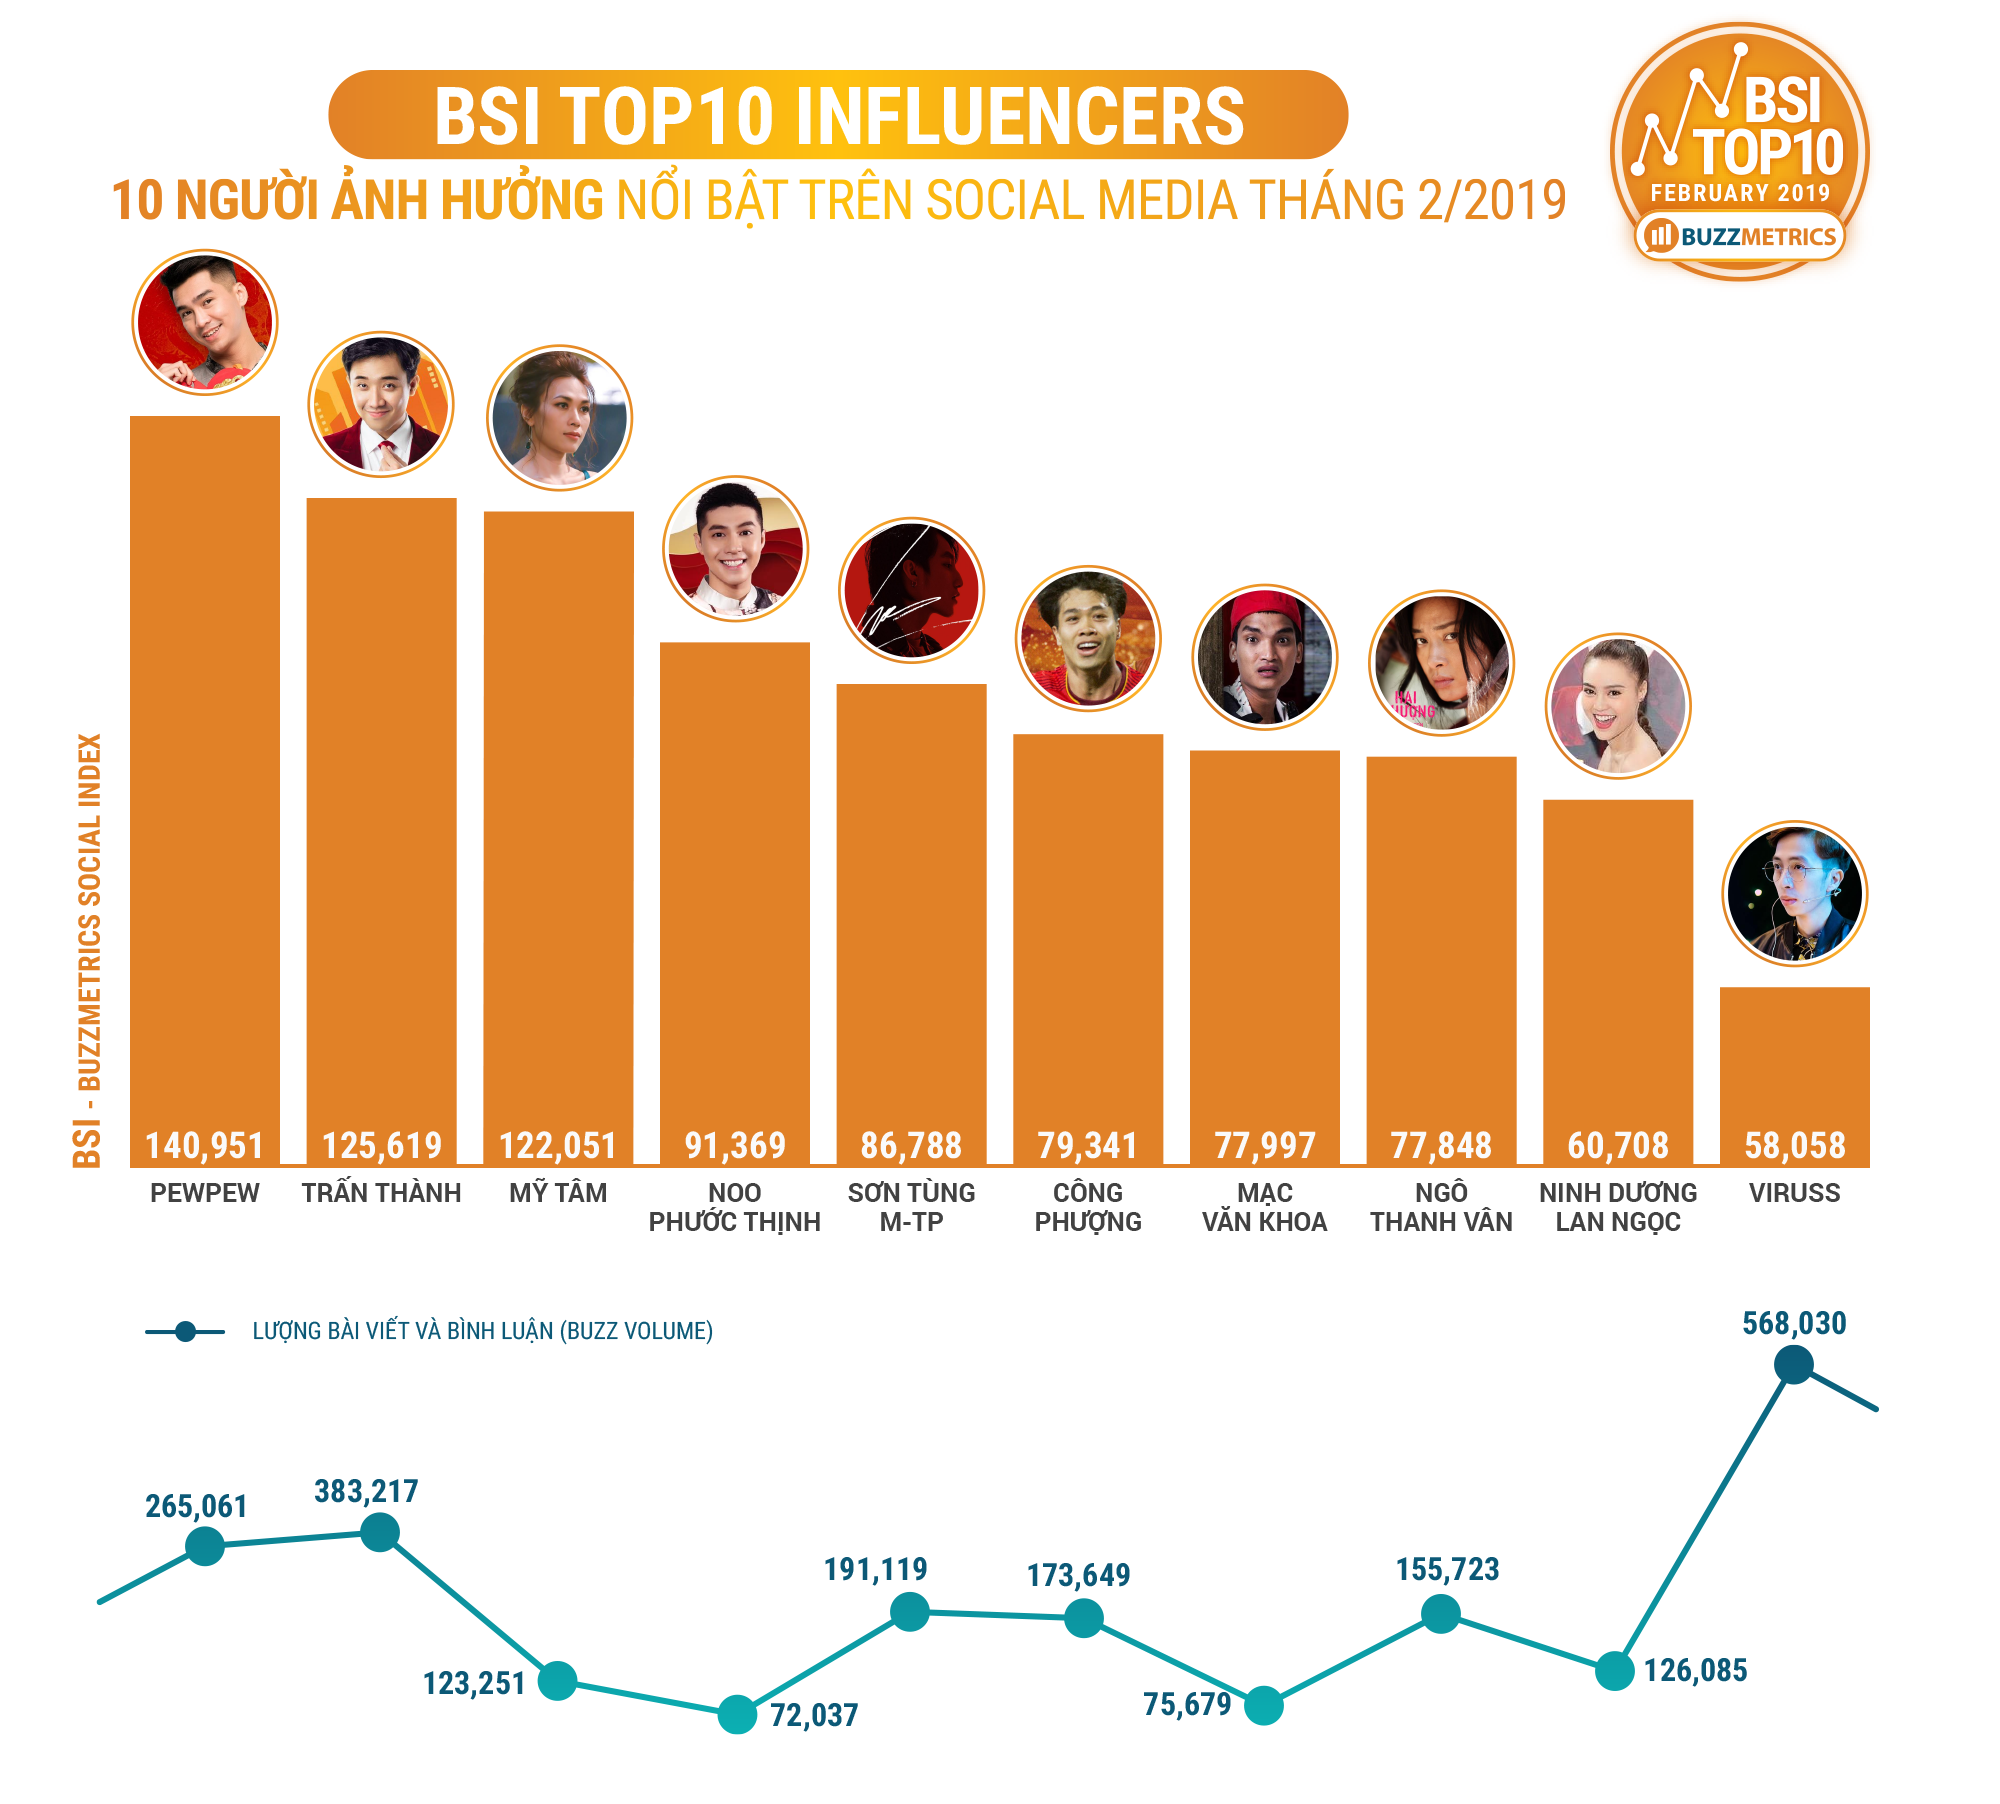 BSI Top10 Influencers 02/2019